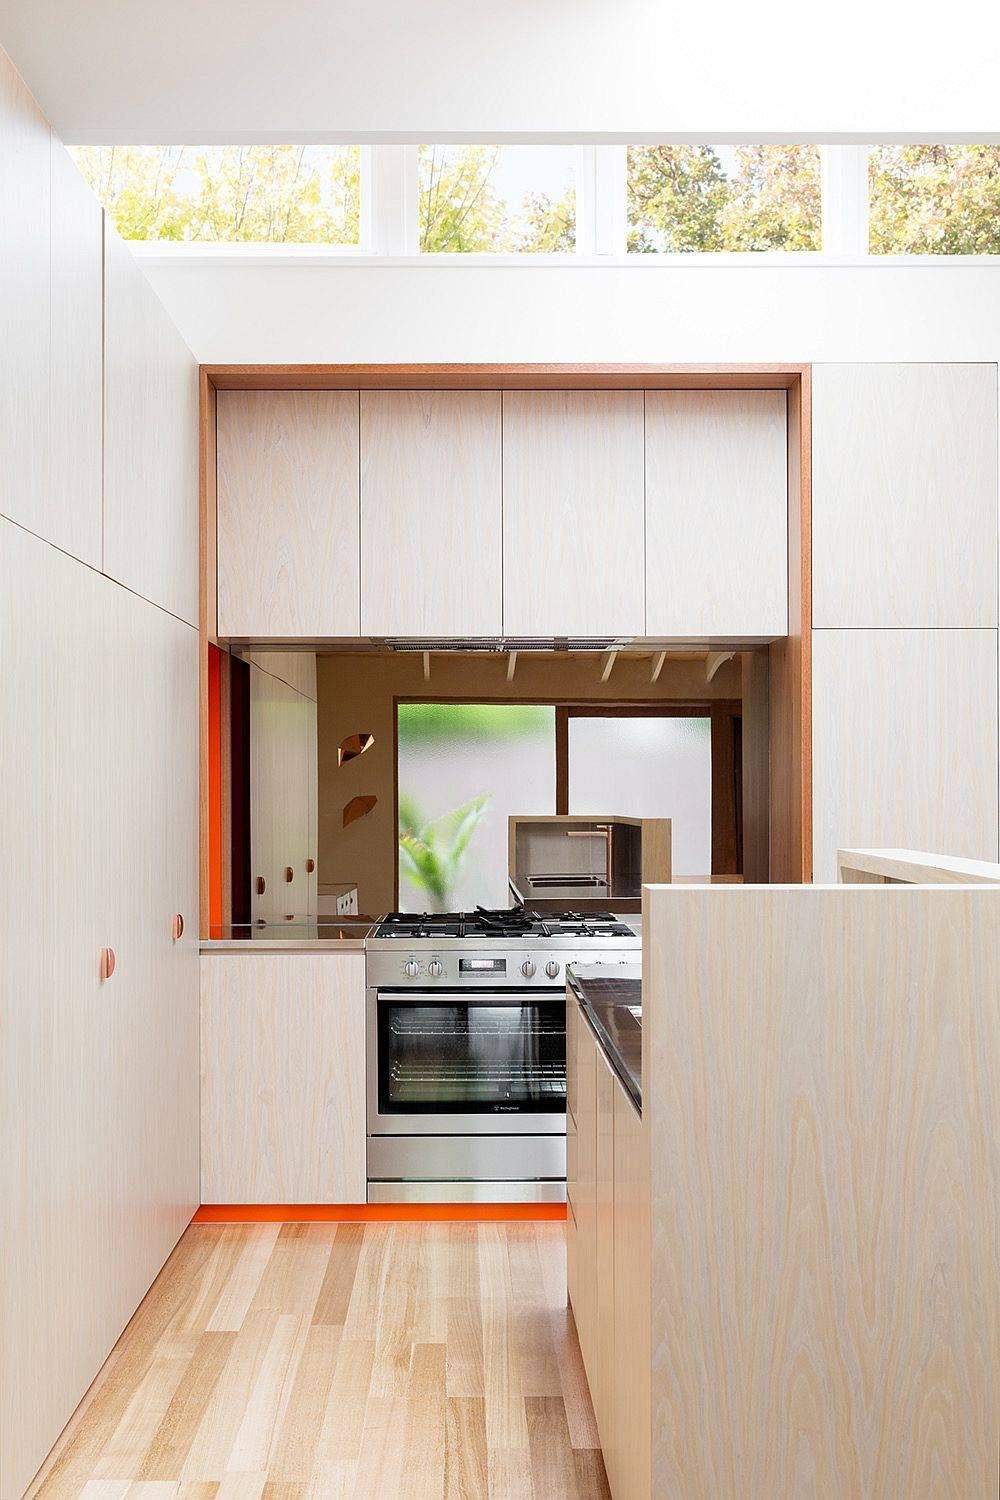 Tiny-kitchen-in-wooden-and-white-with-creative-use-of-clerestory-windows-49542